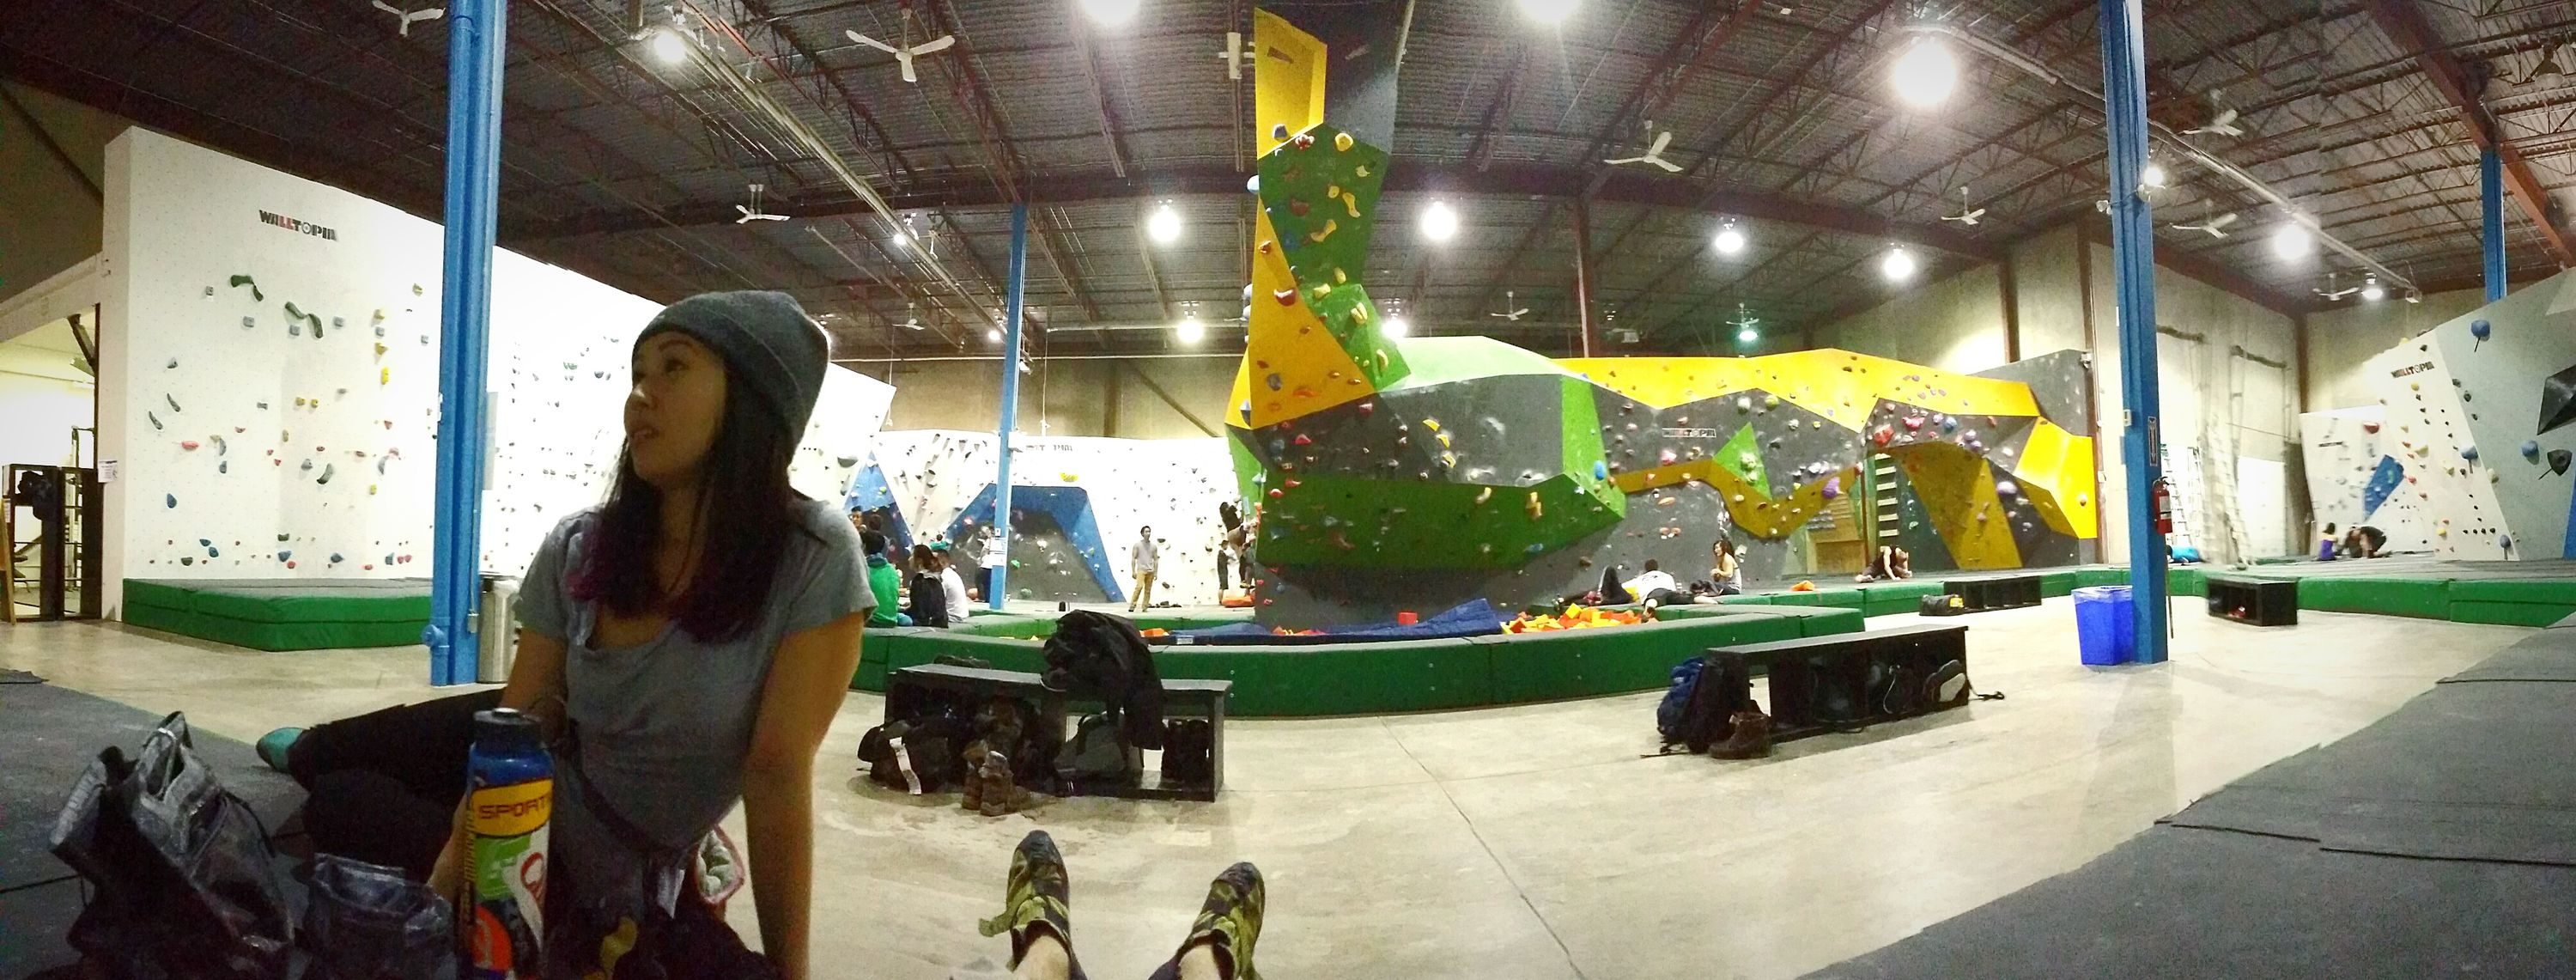 The Places I've Been Today Canadas largest indoor bouldering gym the Hub. Photo by Daniel Luk Rock Climbing Bouldering Bouldering Wall Climbing Panorama Tsumuraphotography Canada The Hub